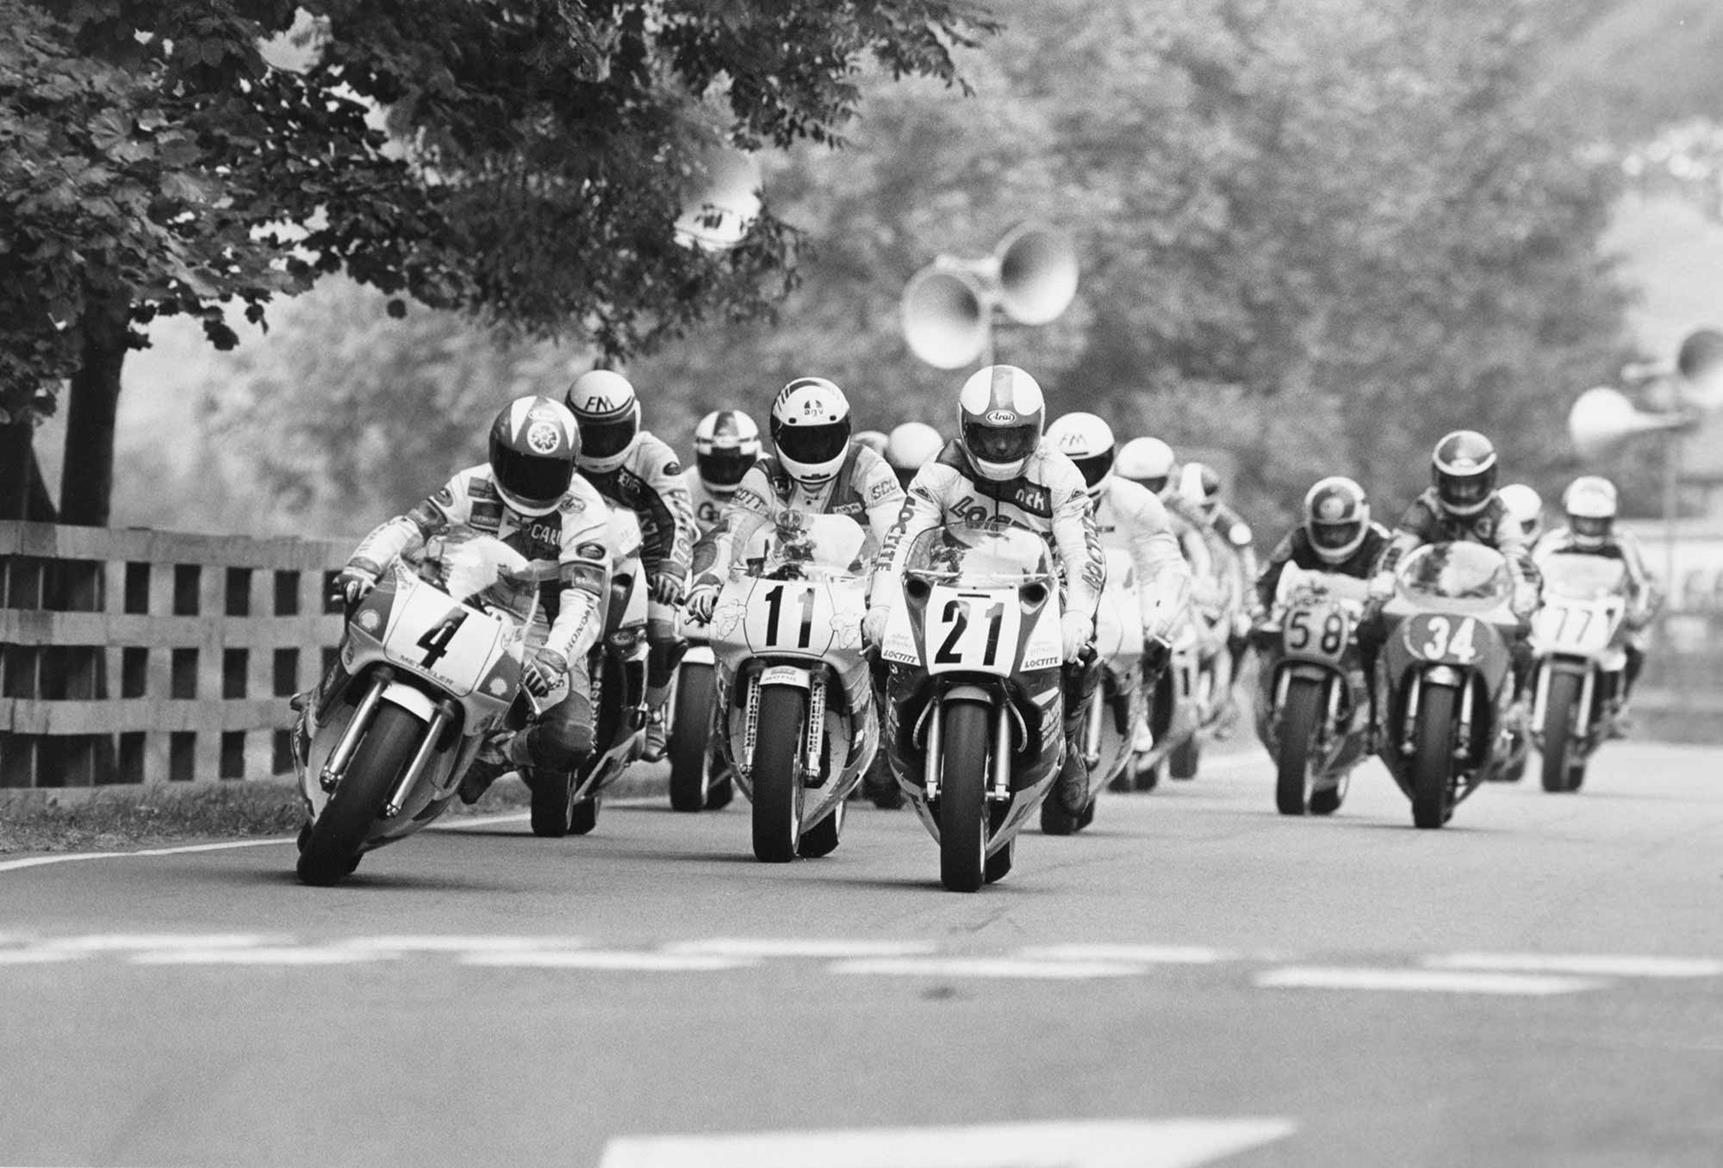 Carl Fogarty leads at Scarborough in 1989